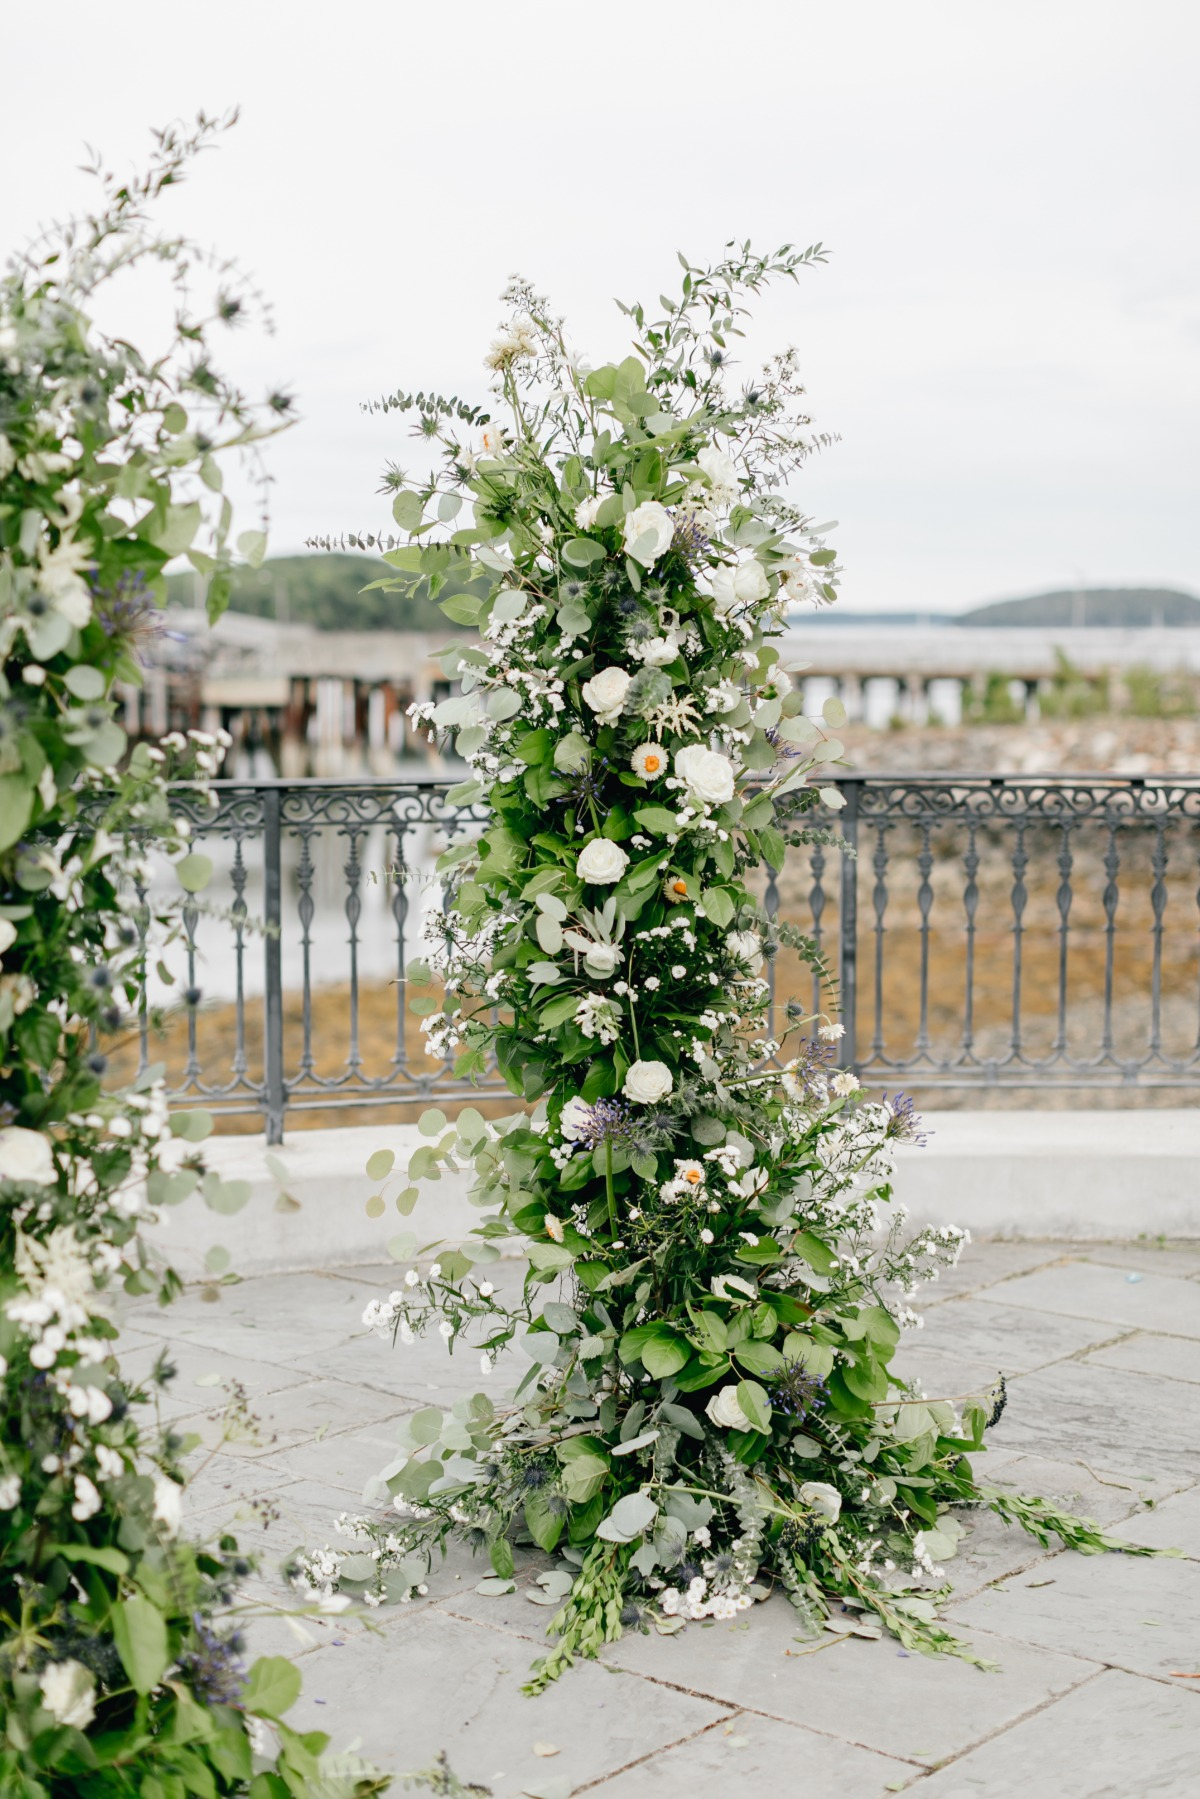 Ceremony floral backdrop